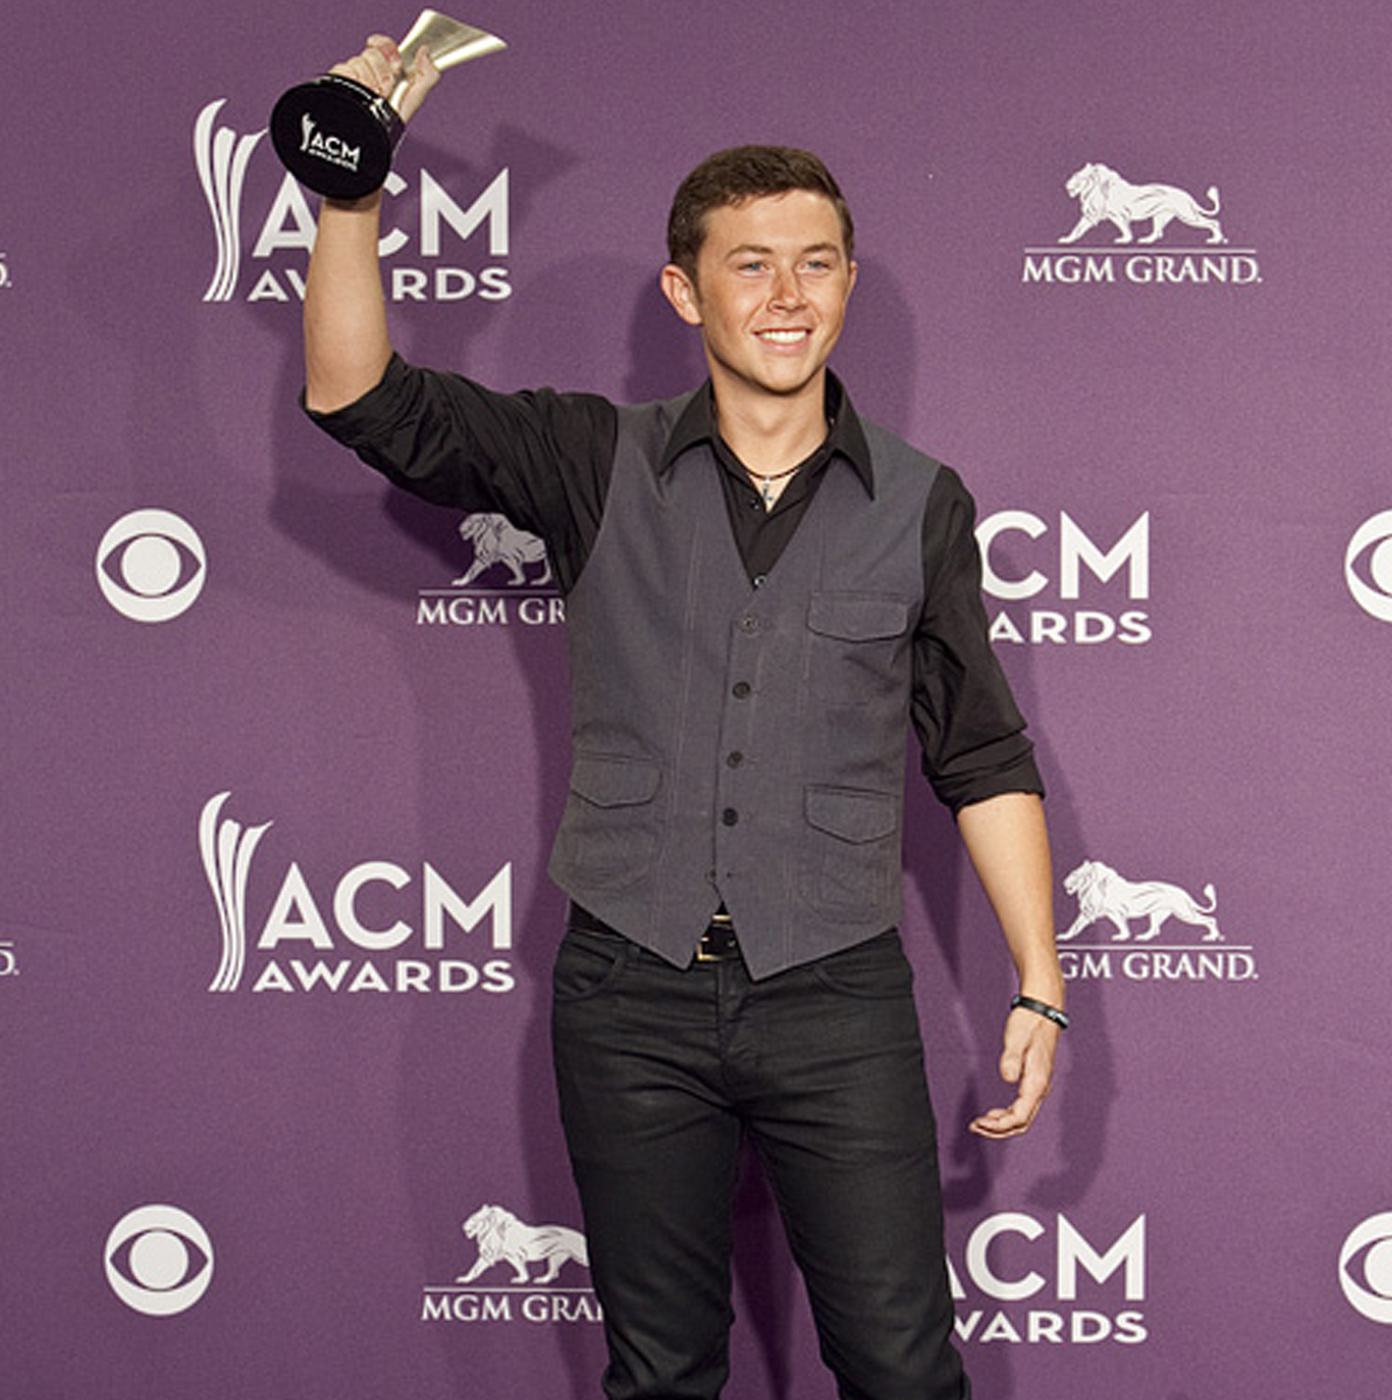 Scotty McCreery wins New Artist of the Year,